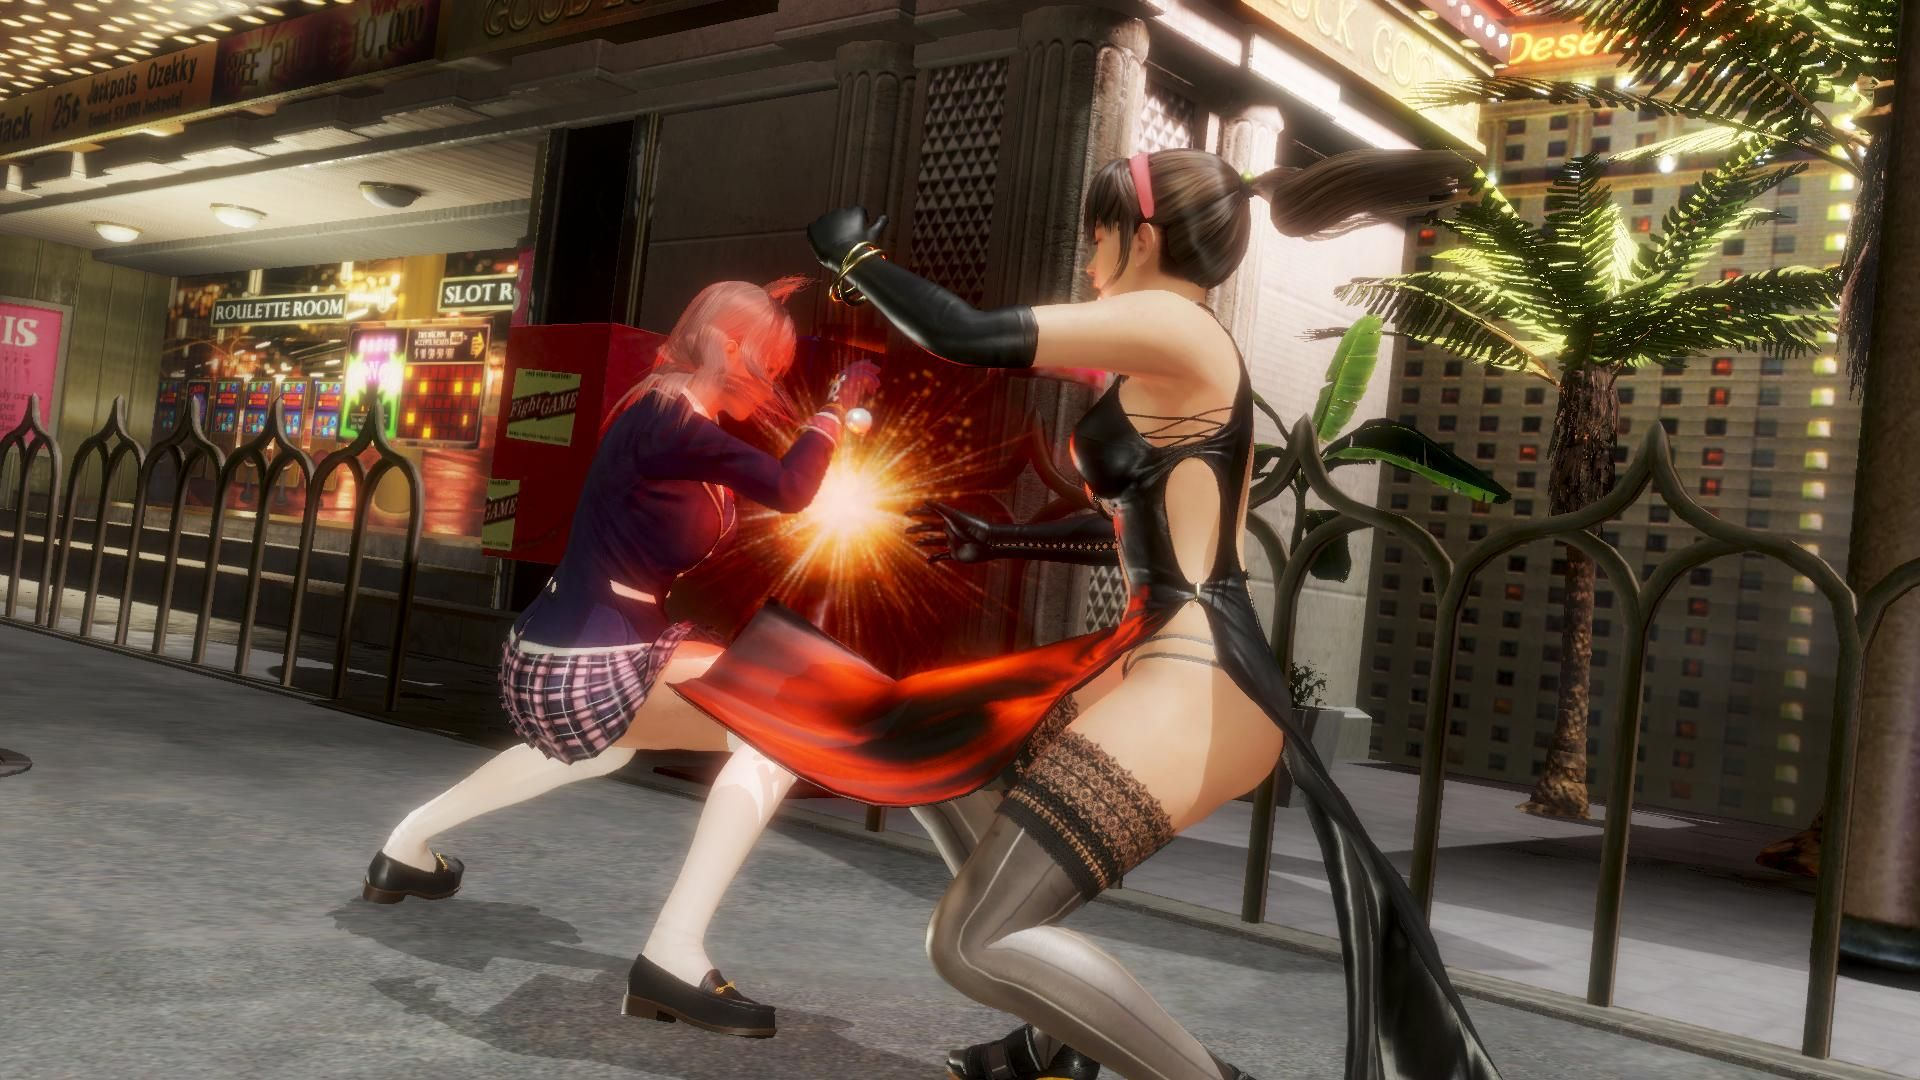 Unforgettable - Dead or Alive 6